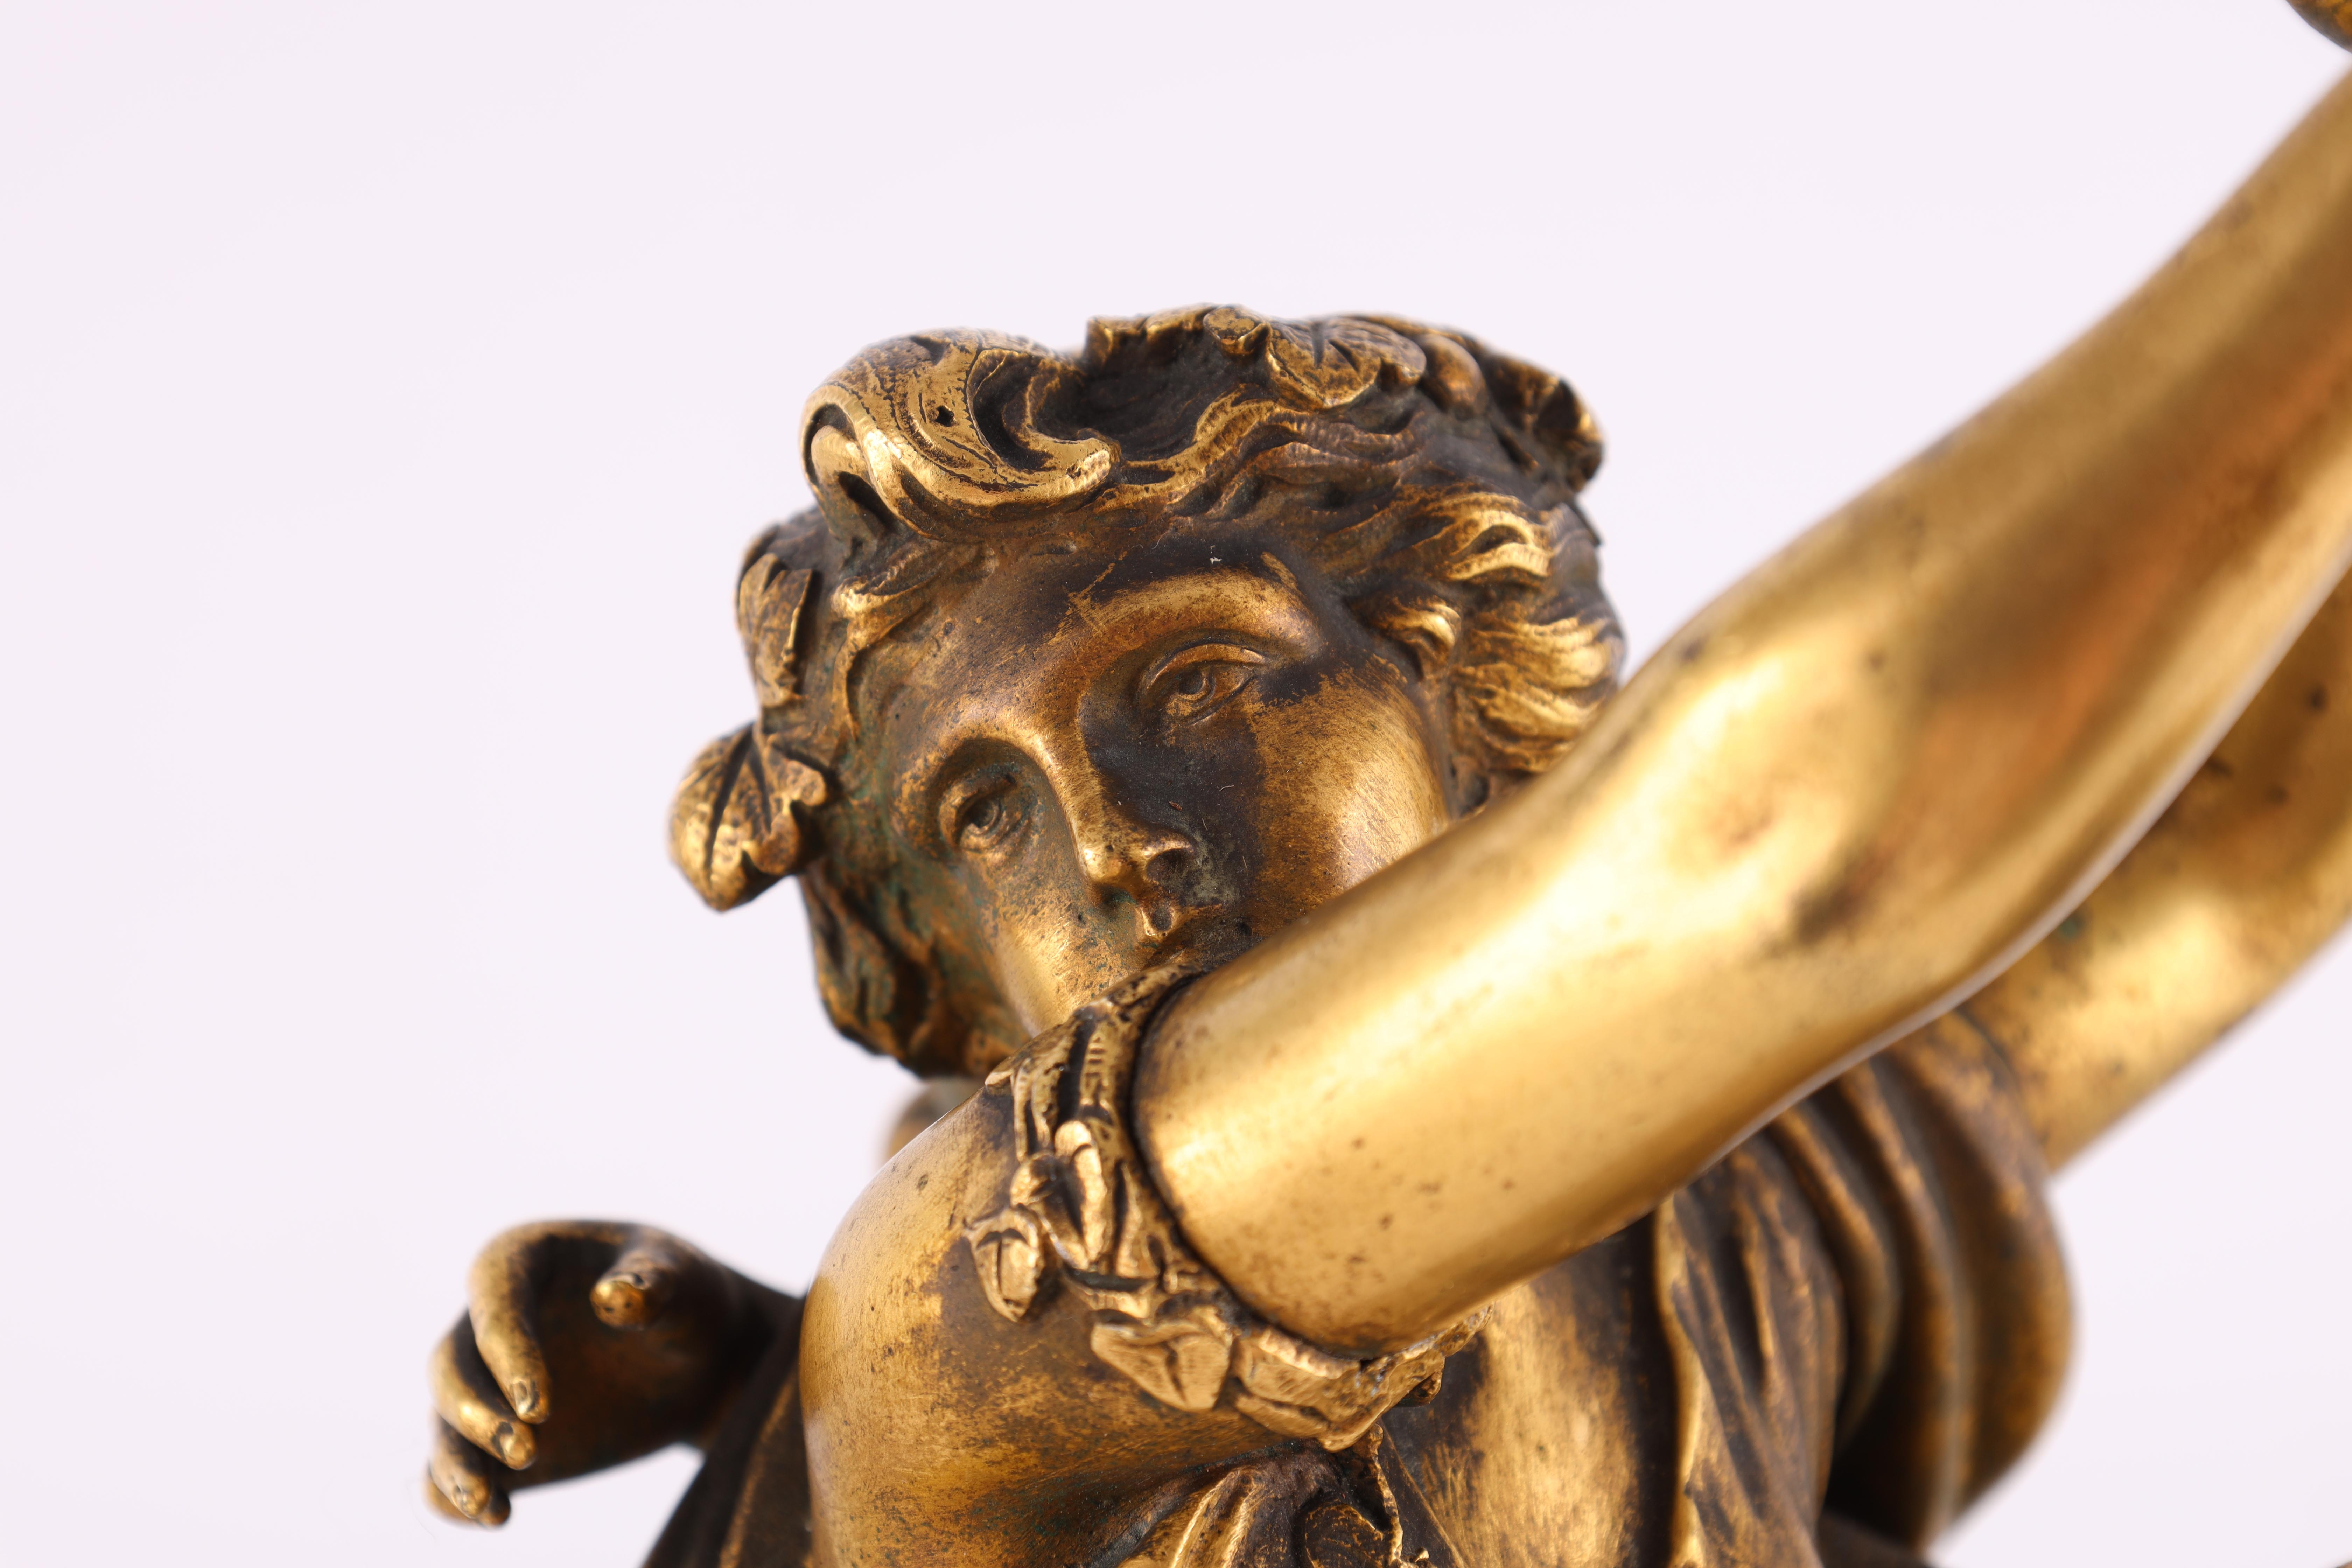 AFTER MICHAEL CLAUDE CLODION A LATE 19TH CENTURY FRENCH GILT BRONZE SCULPTURE titled 'Bacchanalia' - Image 7 of 10